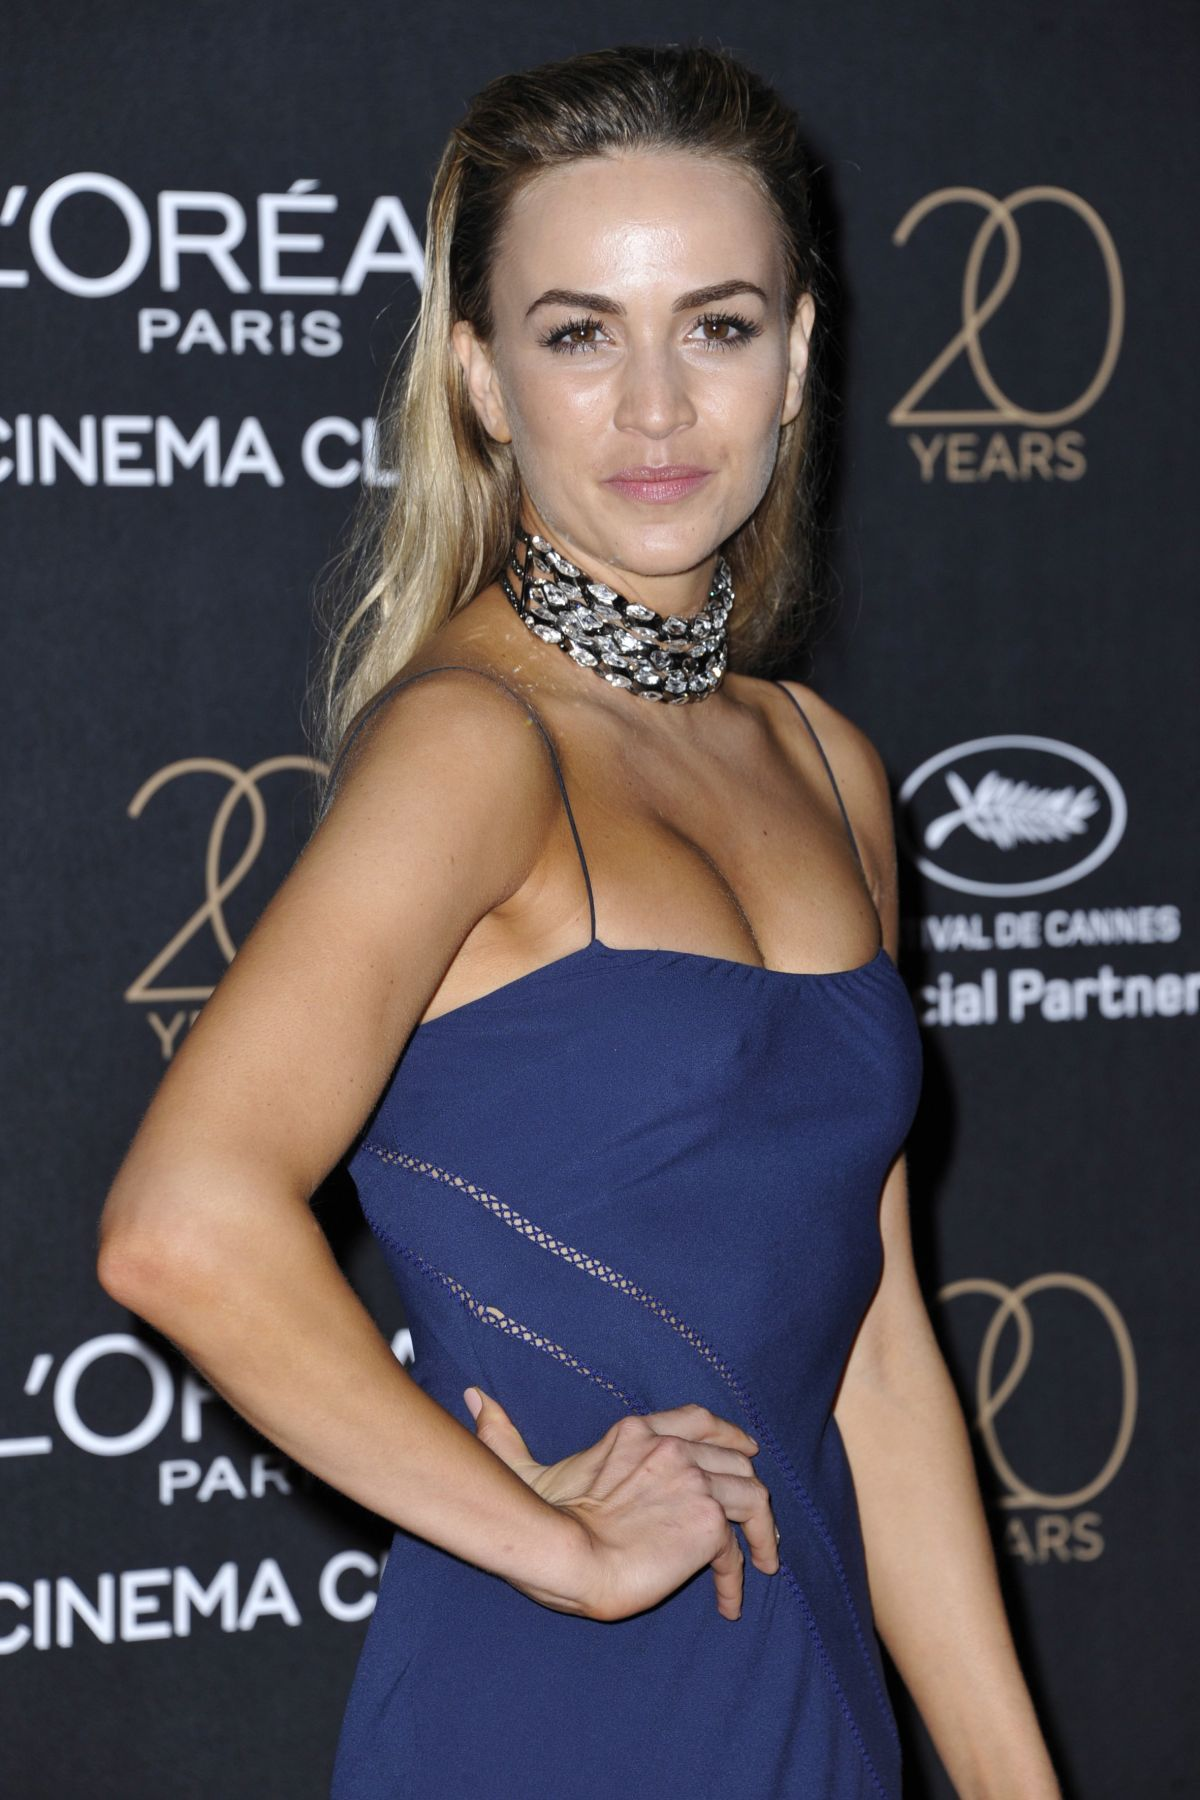 CARMEN JORDA at L'Oreal 20th Anniversary Party at Cannes Film Festival 05/24/2017